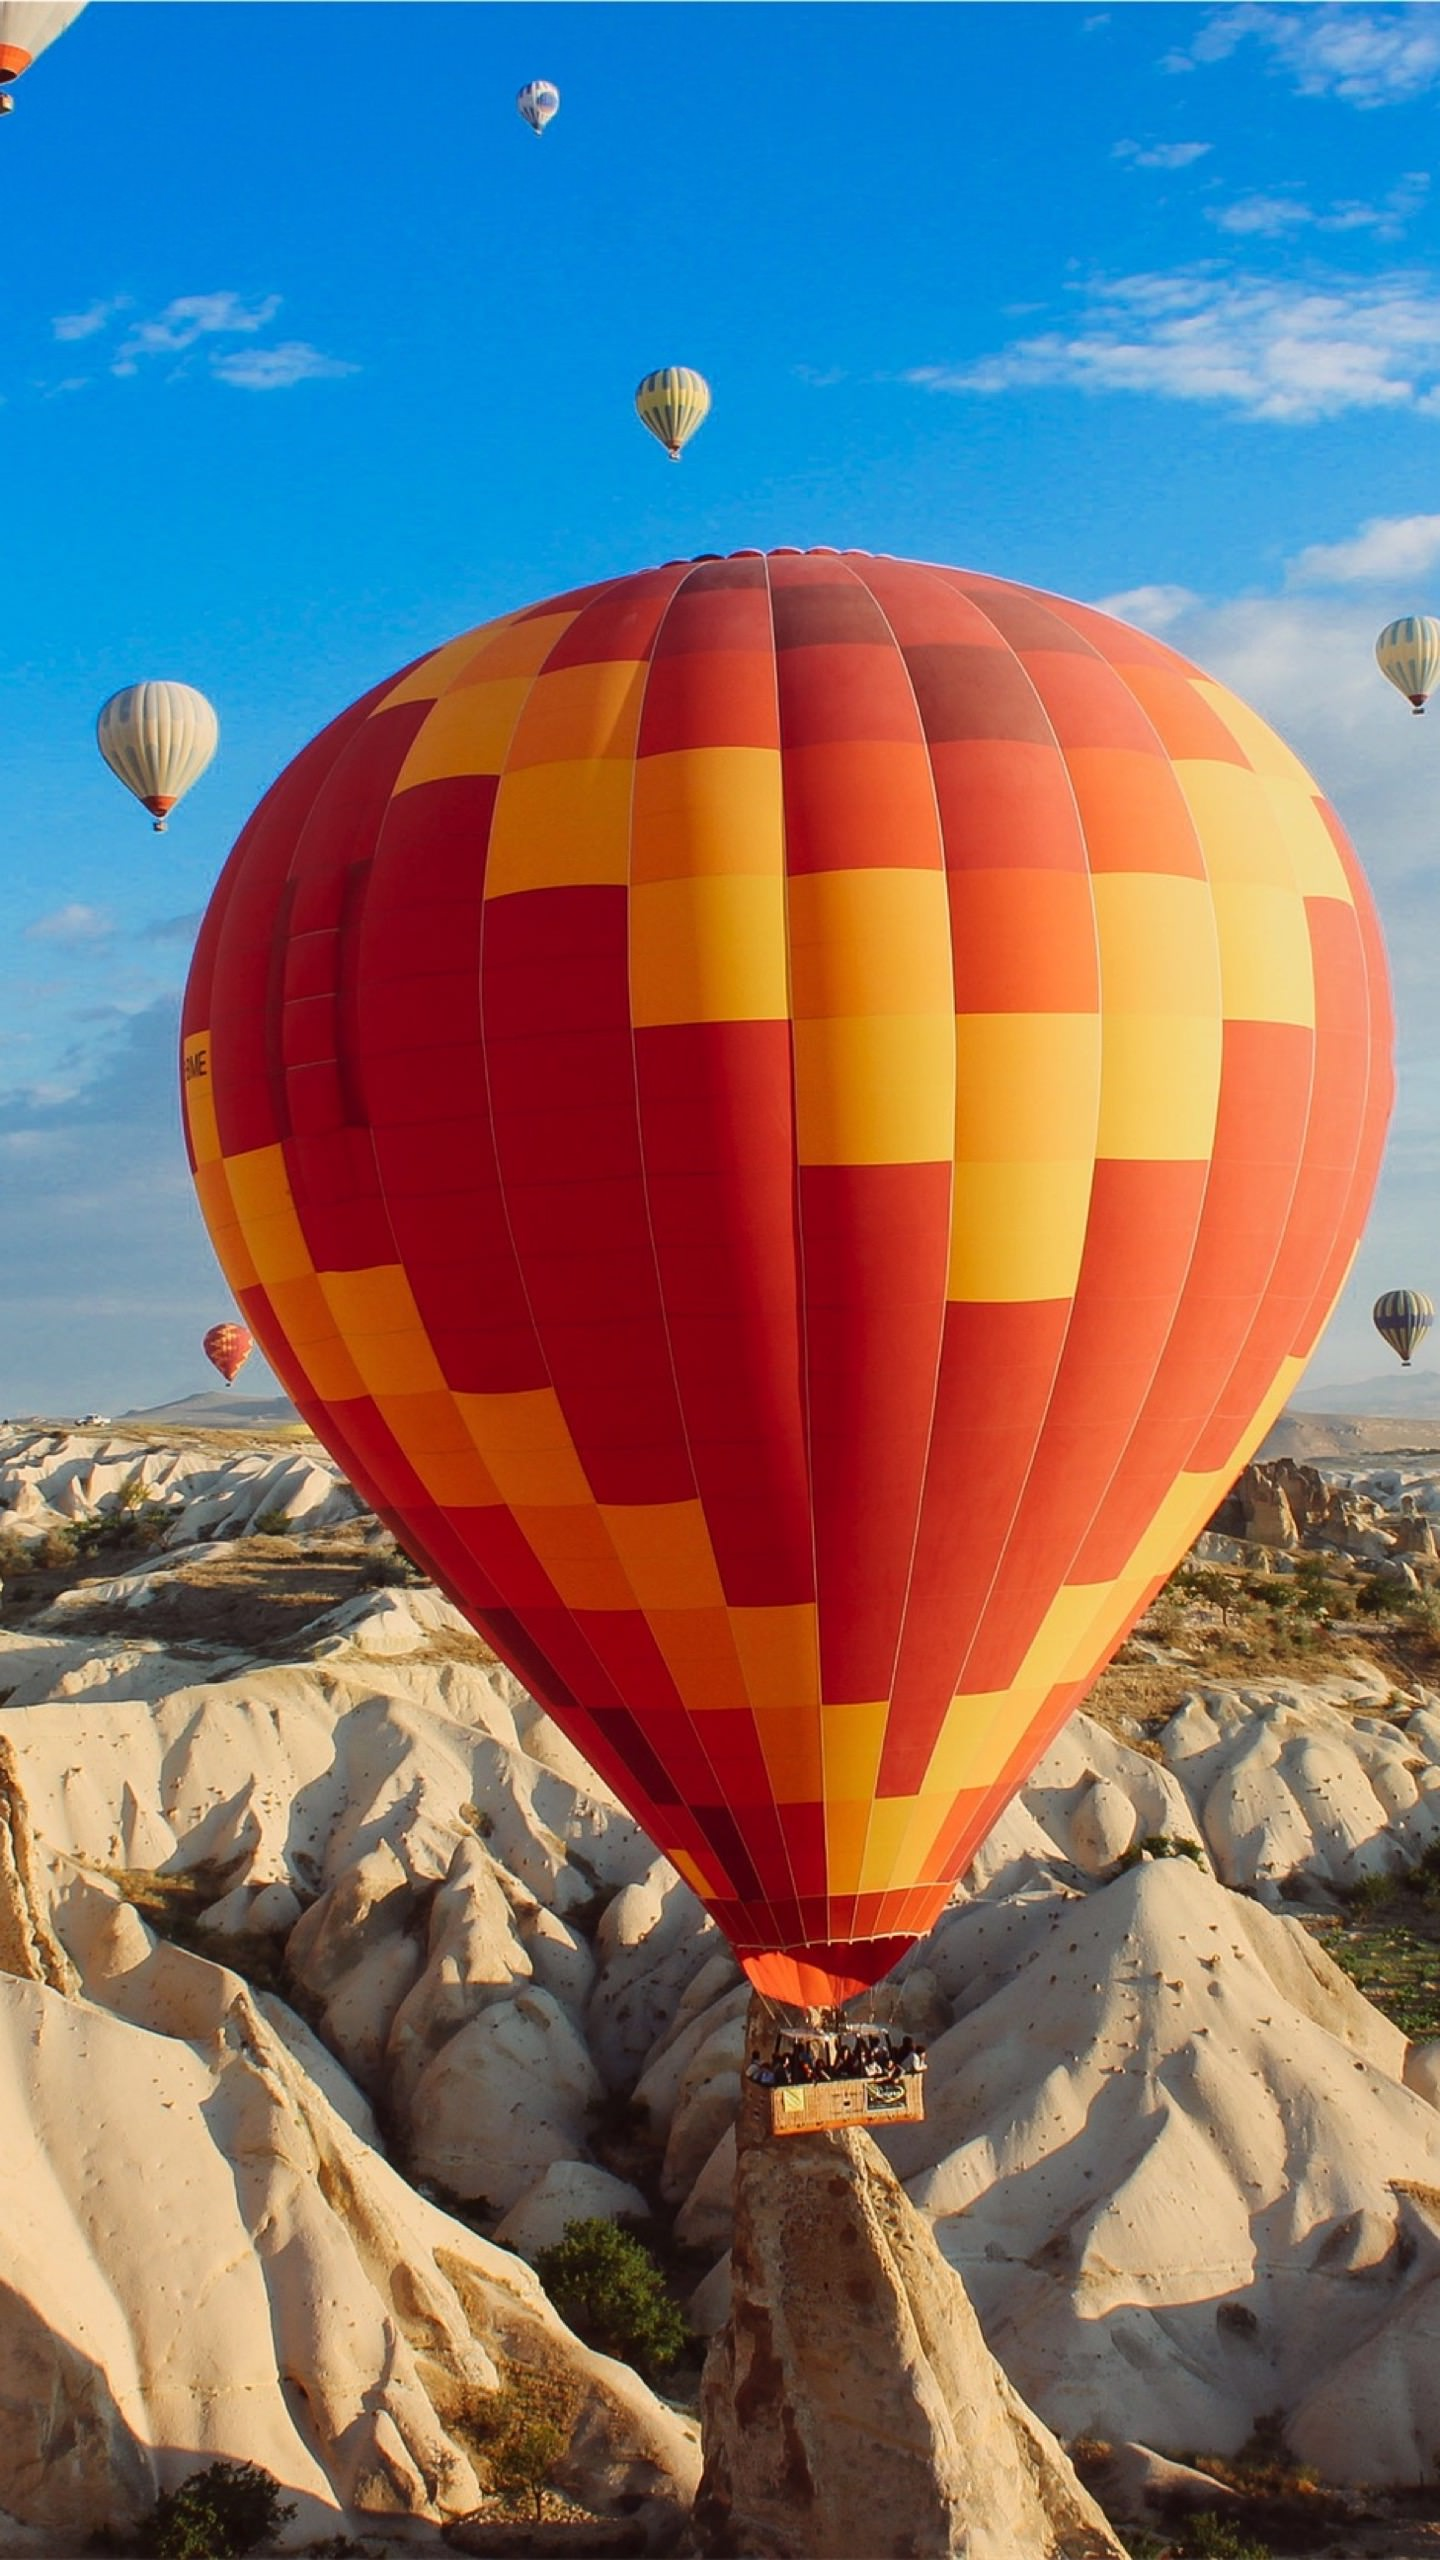 landscape balloon sky blue android smartphone wallpaper